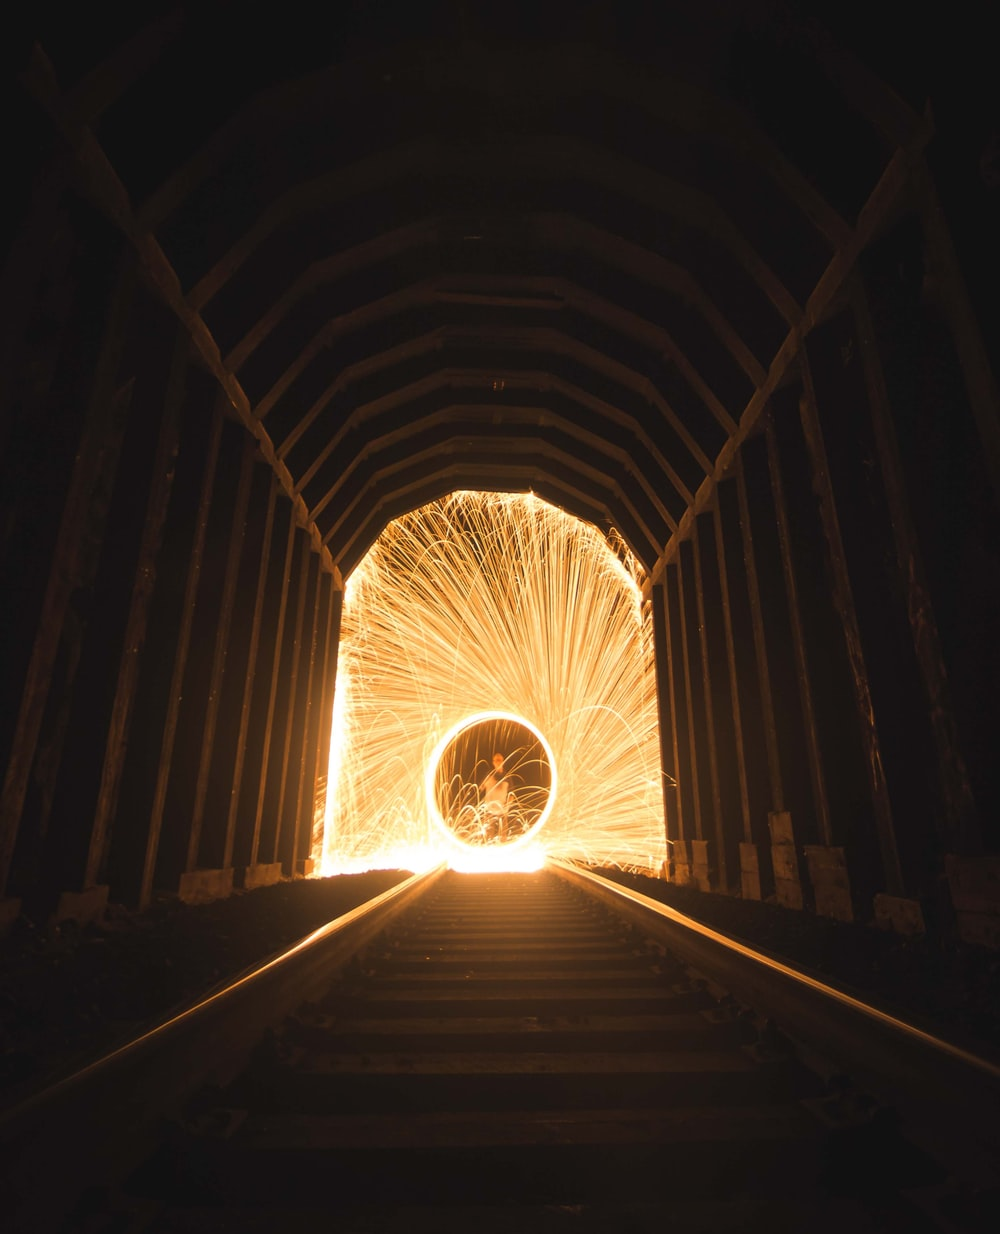 time lapse photography of steel wool fireworks inside tunnel